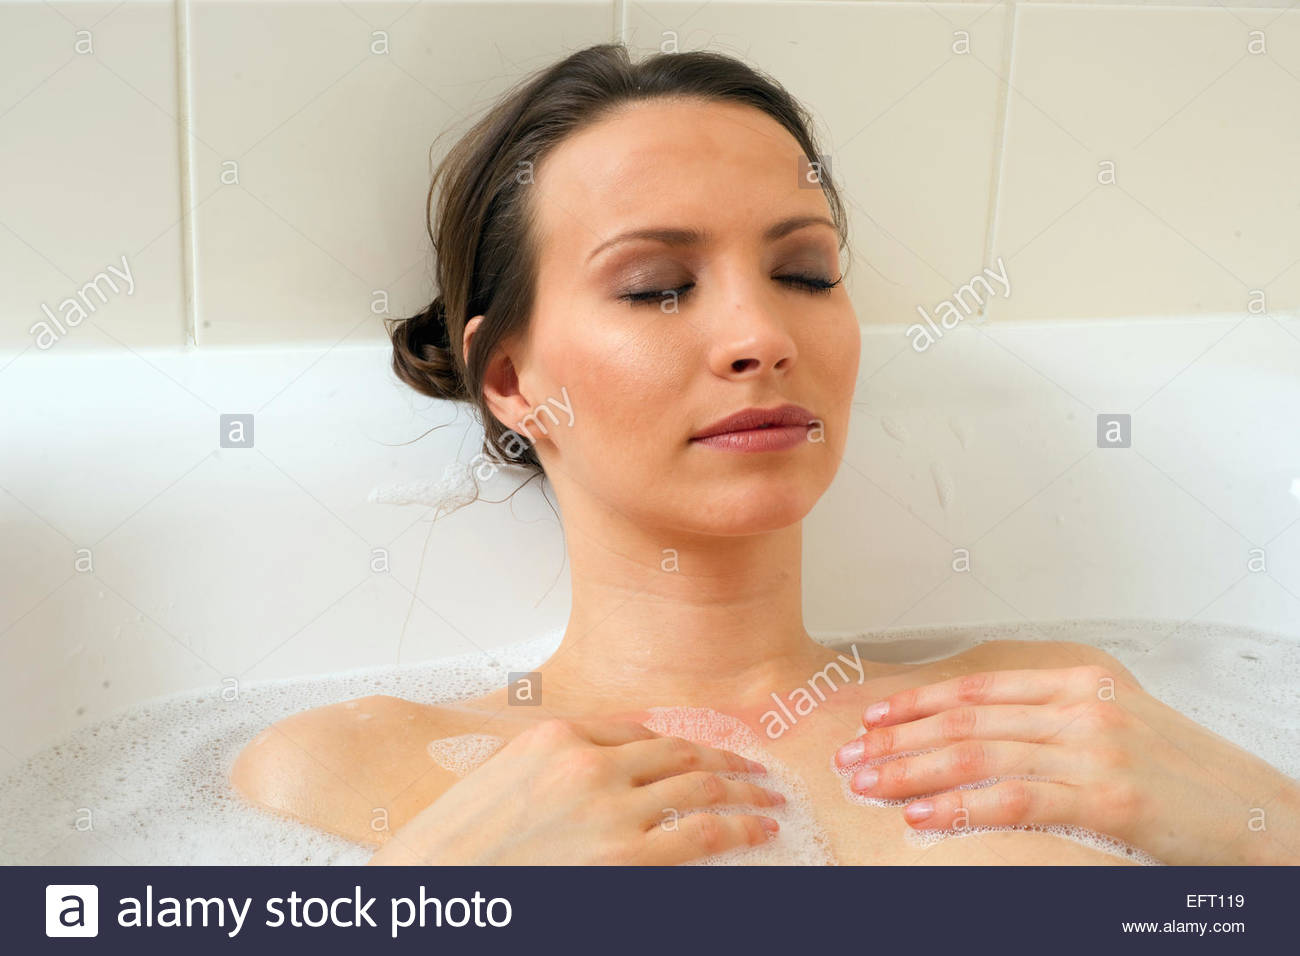 Young Bathing In A Bathtub Bathroom Washing Face Woman Bathtub Lifestyle Portrait Young Adult One Person Only Young - Stock Image